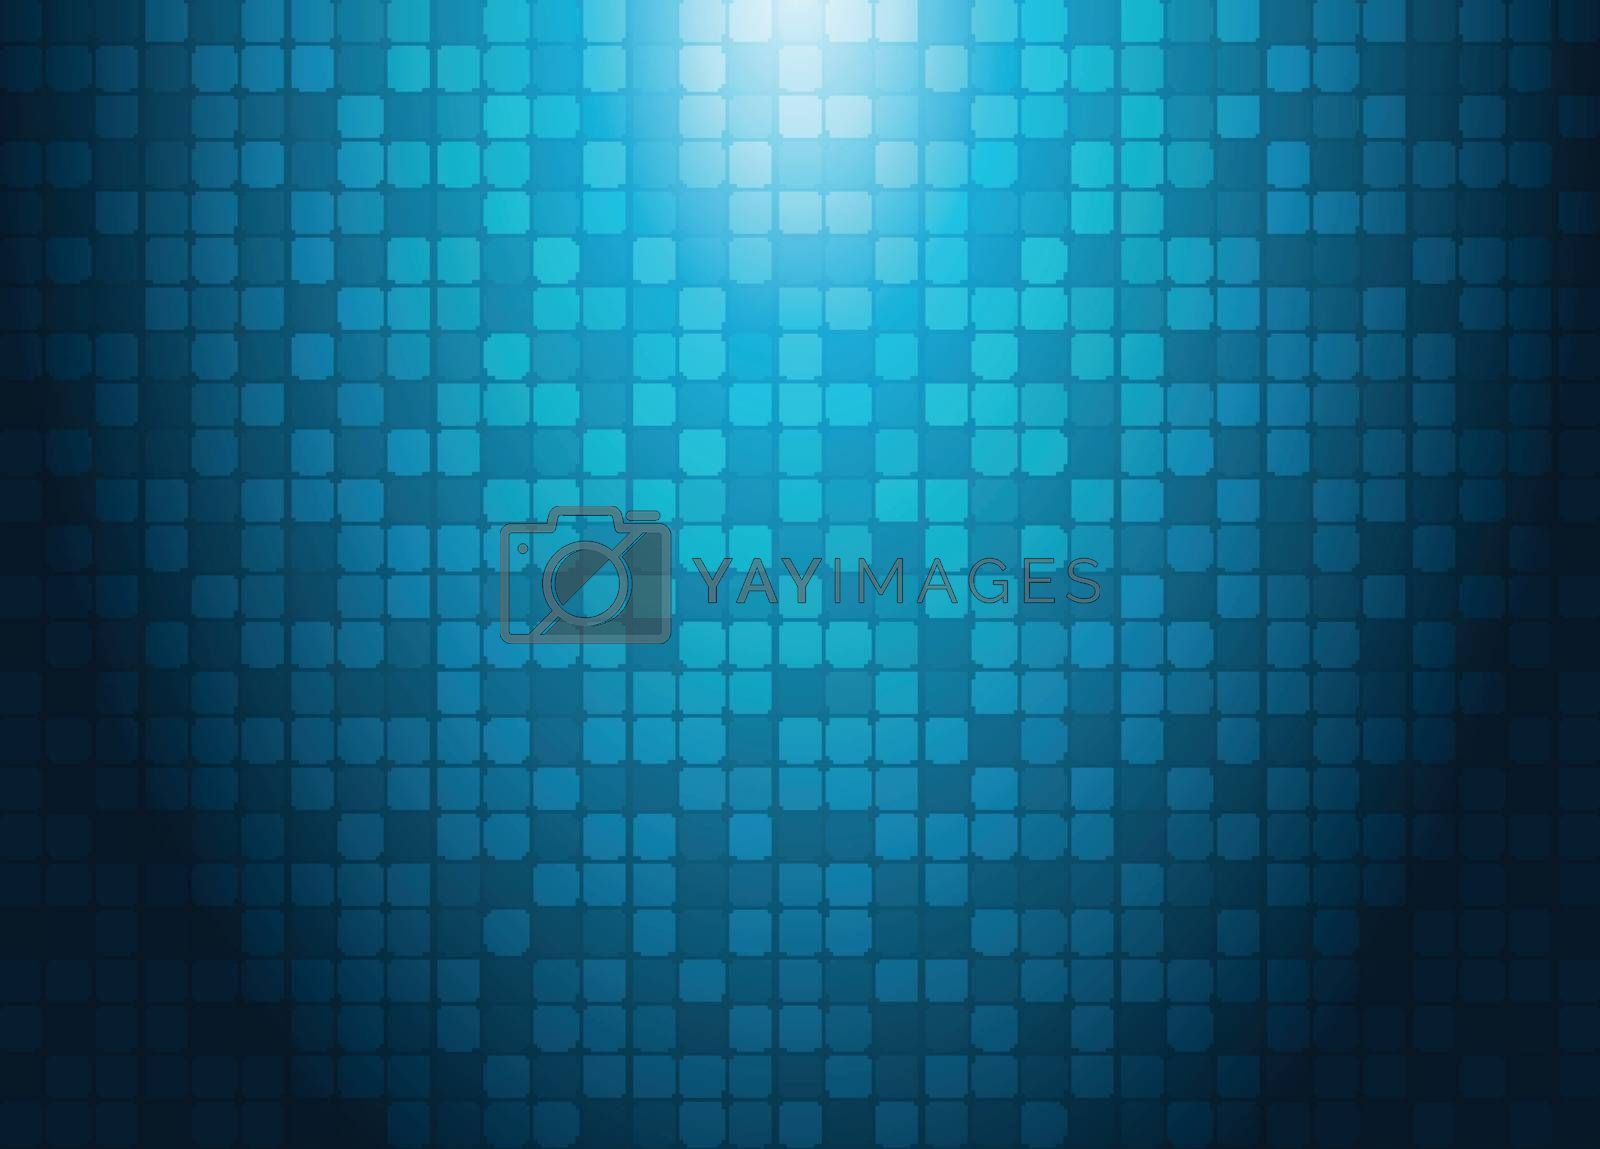 Abstract technology concept with lighting effect blue squares pa by phochi